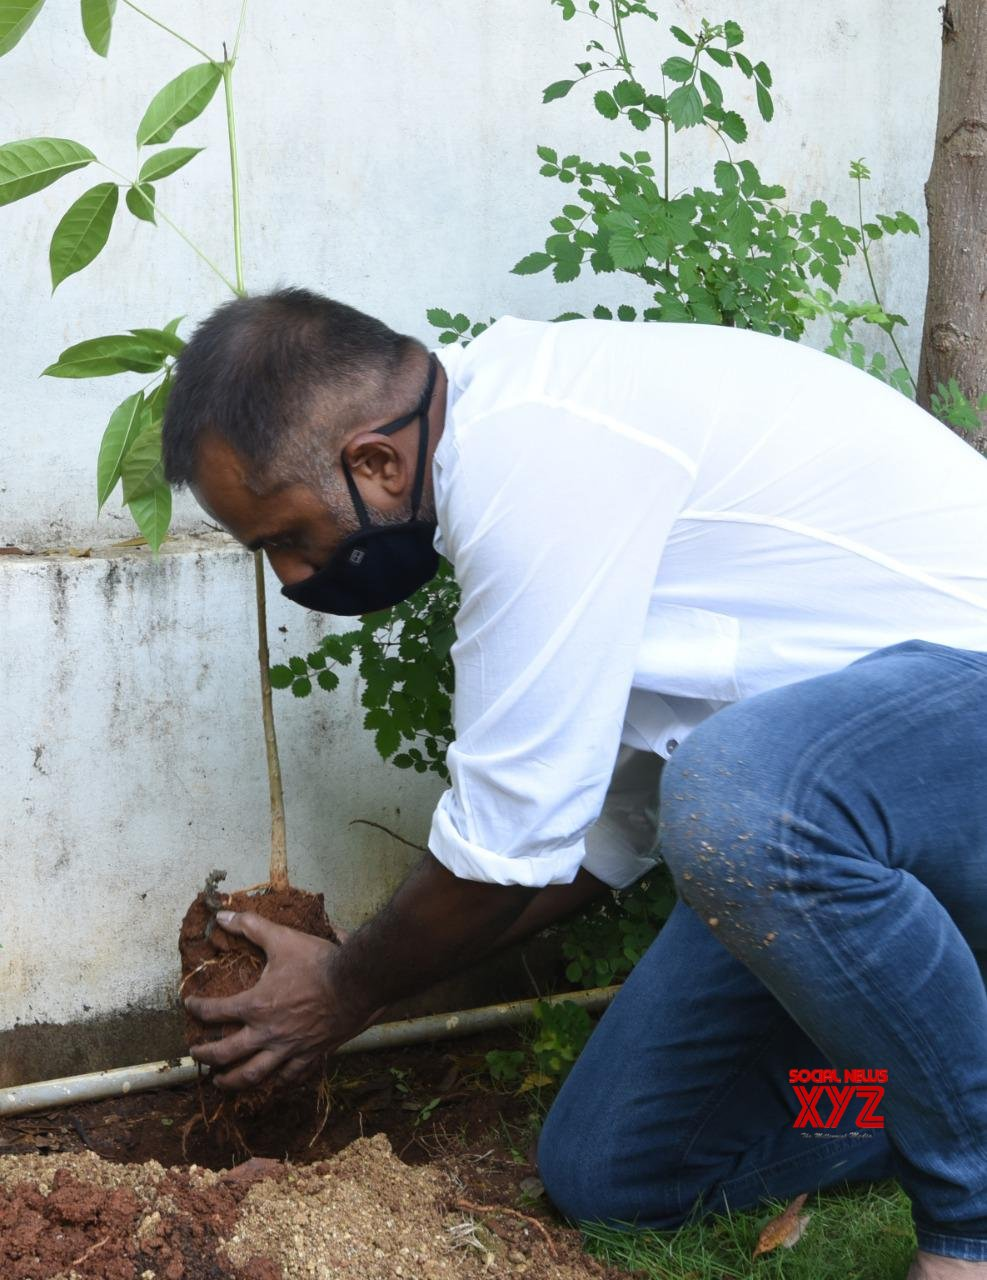 Director Deva Katta Accepted The Green India Challenge Given By Allari Naresh And Planted Saplings At His Home